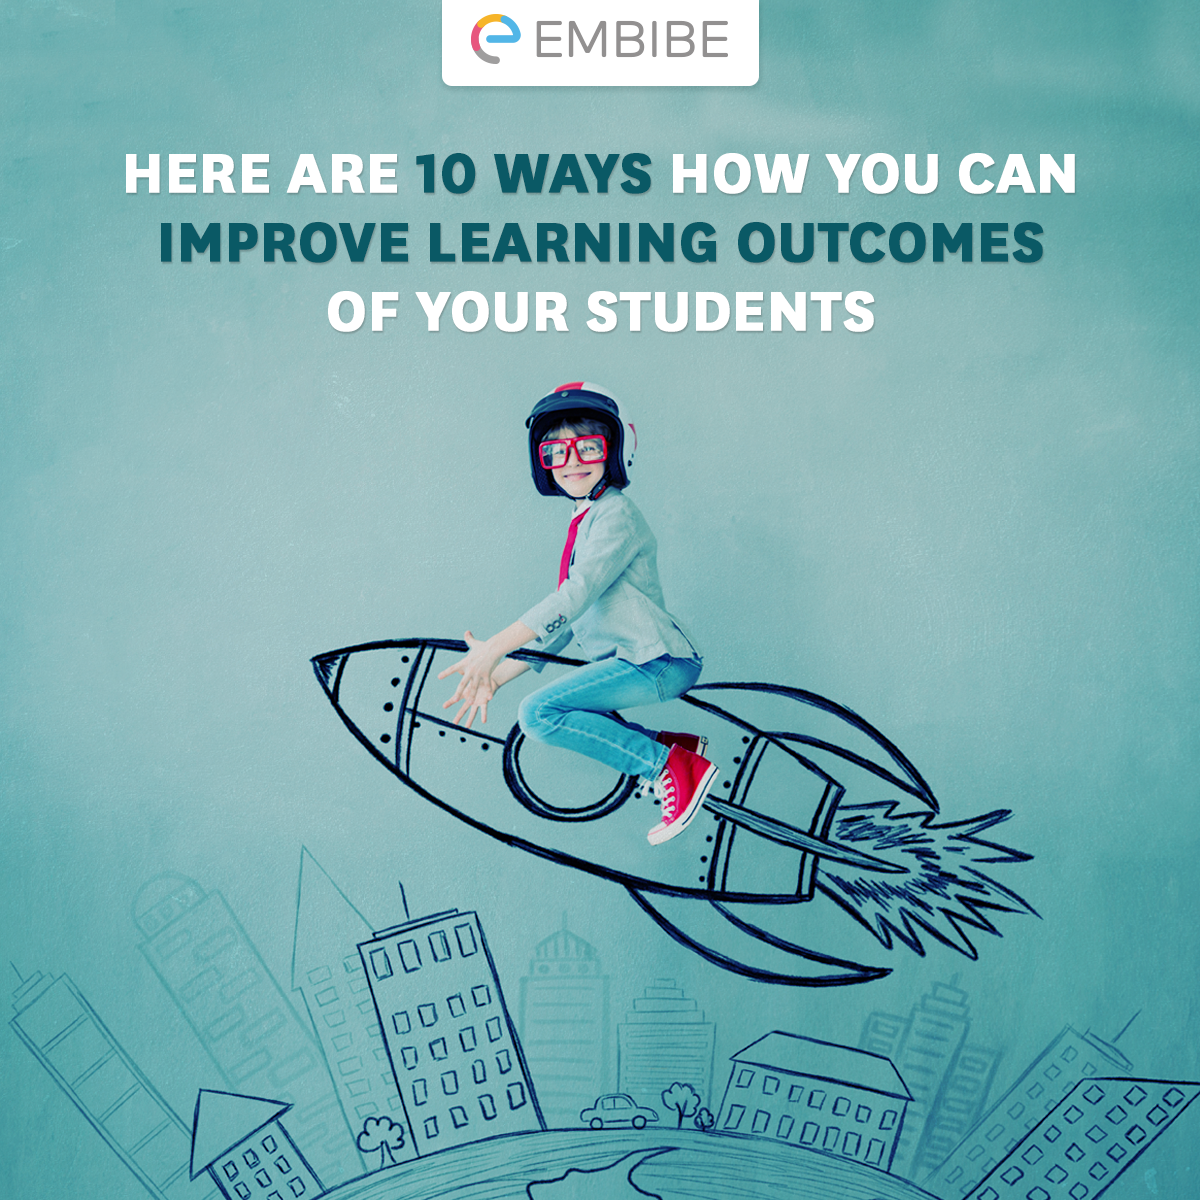 ways-of-improving-learning-outcomes-embibe